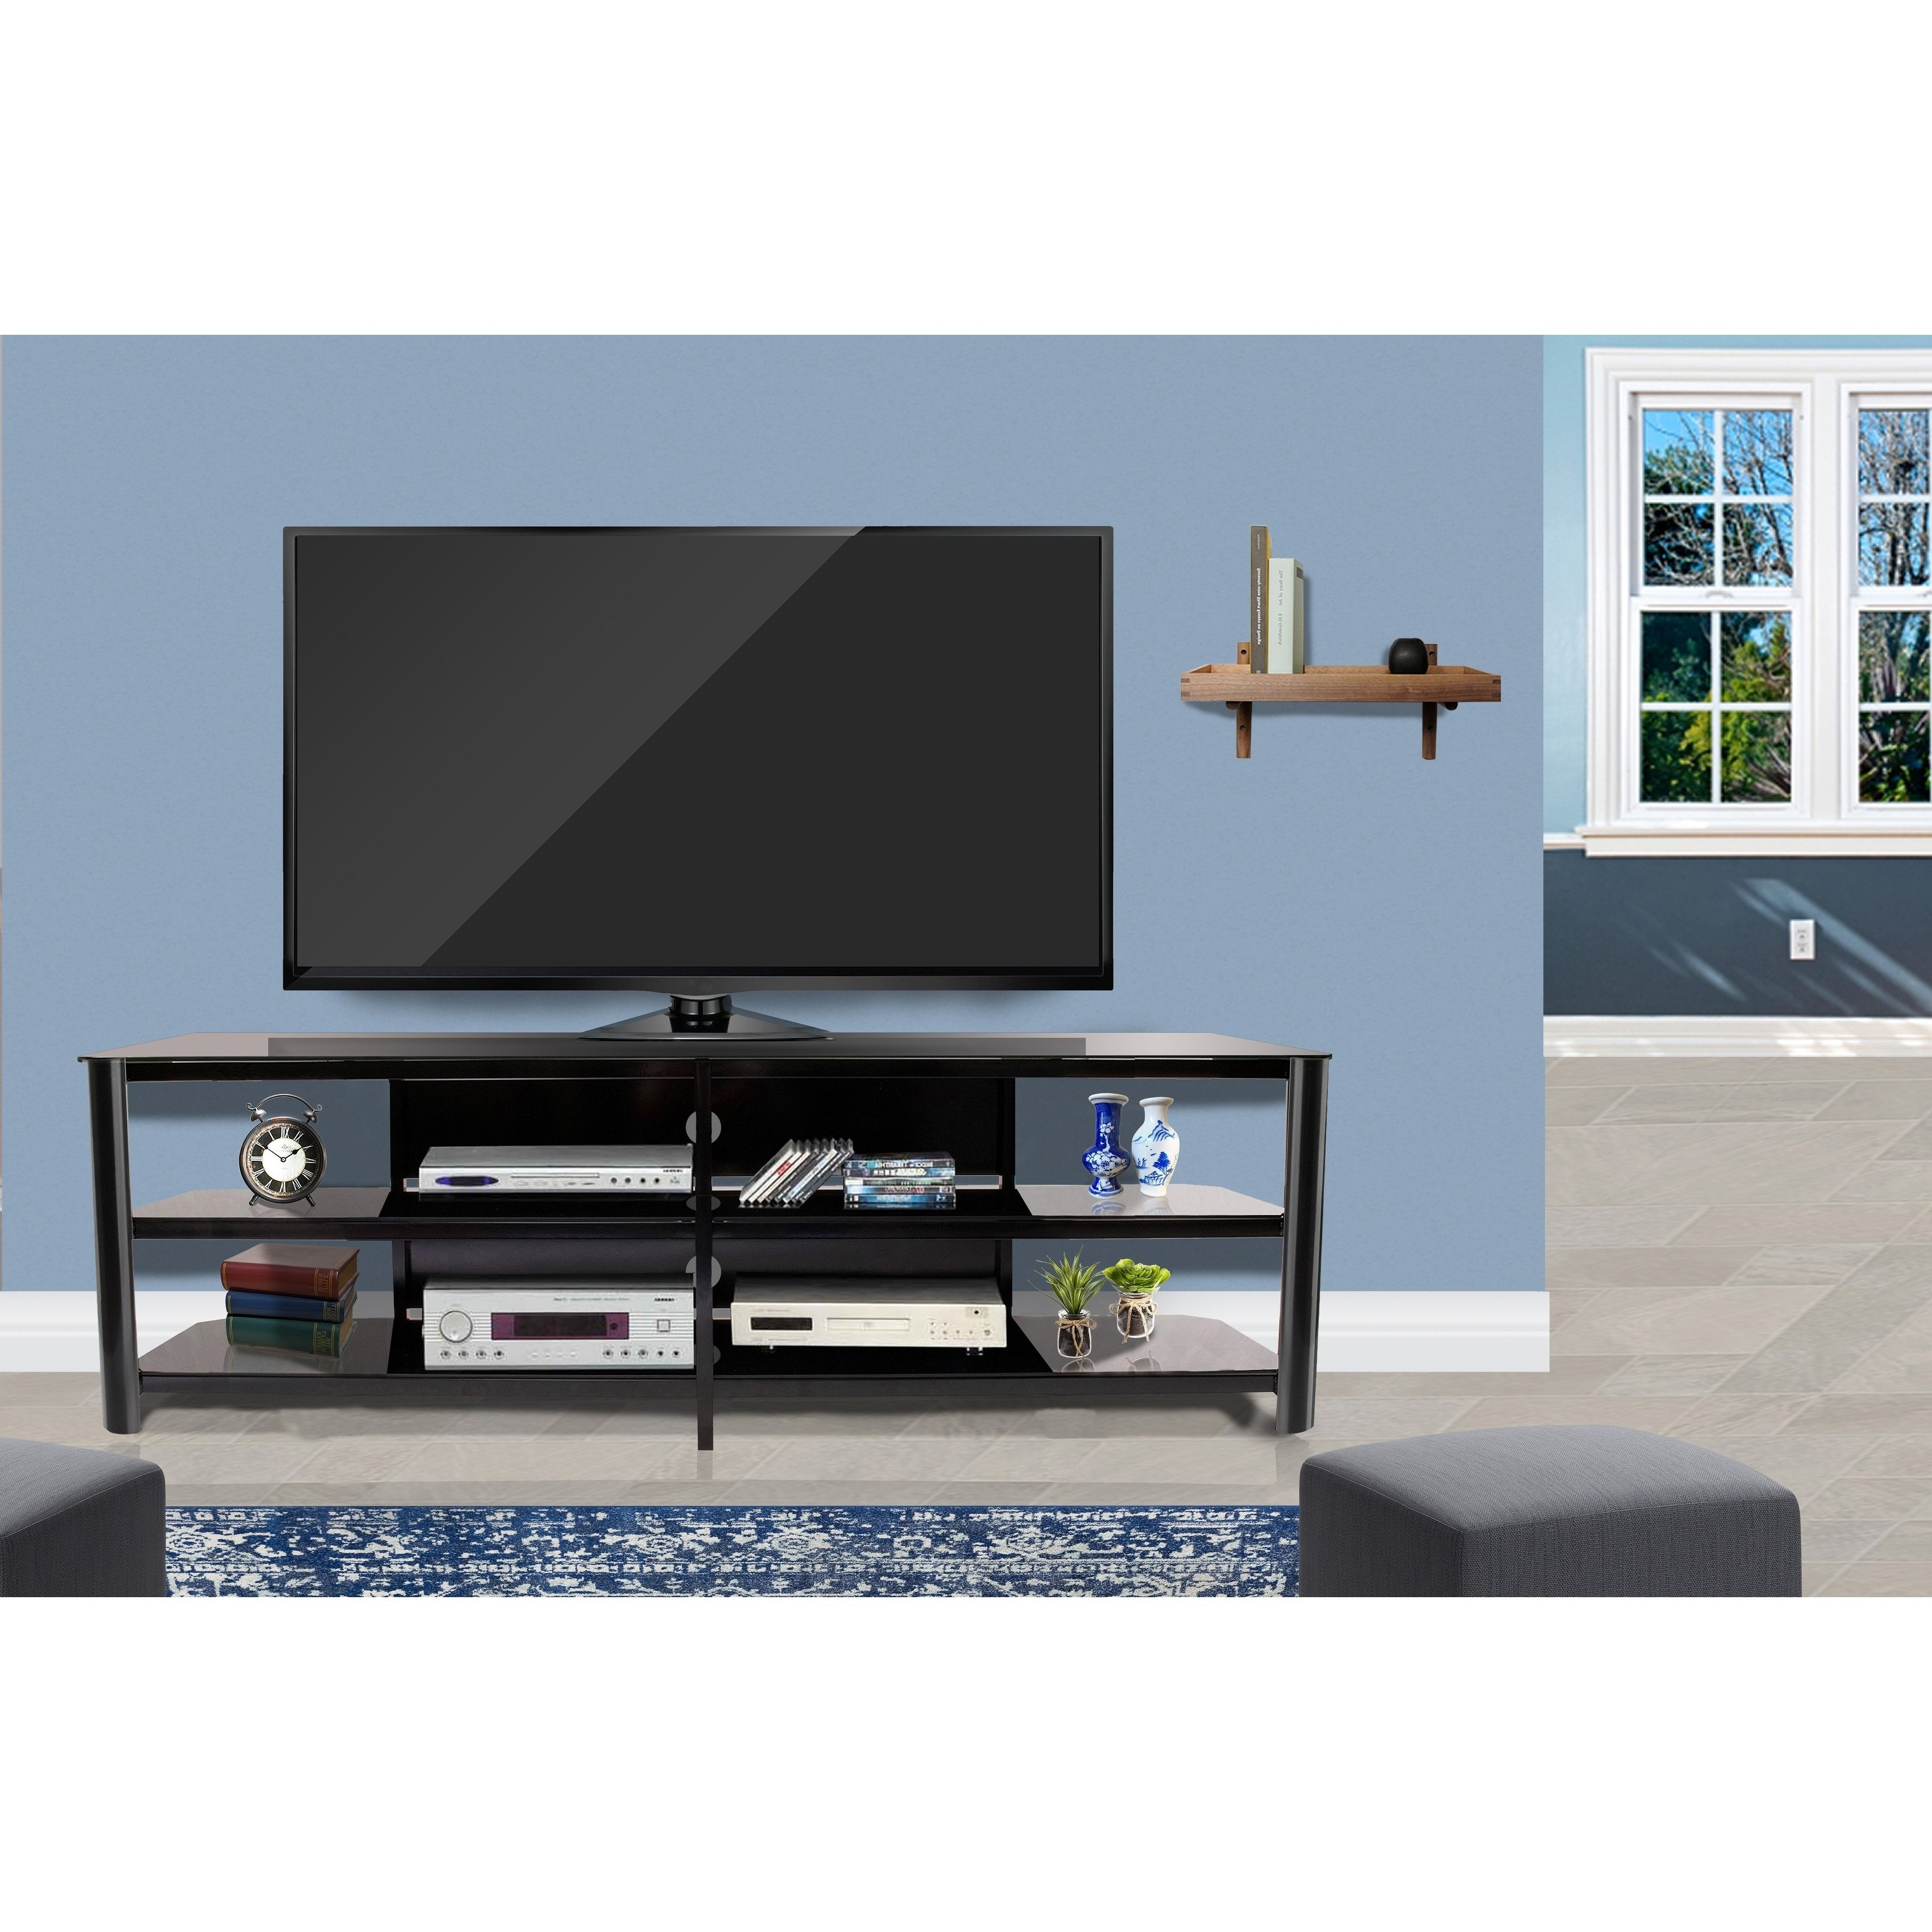 Shop Fold 'n' Snap Oxford Ez Black Innovex Tv Stand – Free Shipping Regarding Oxford 84 Inch Tv Stands (Gallery 11 of 20)